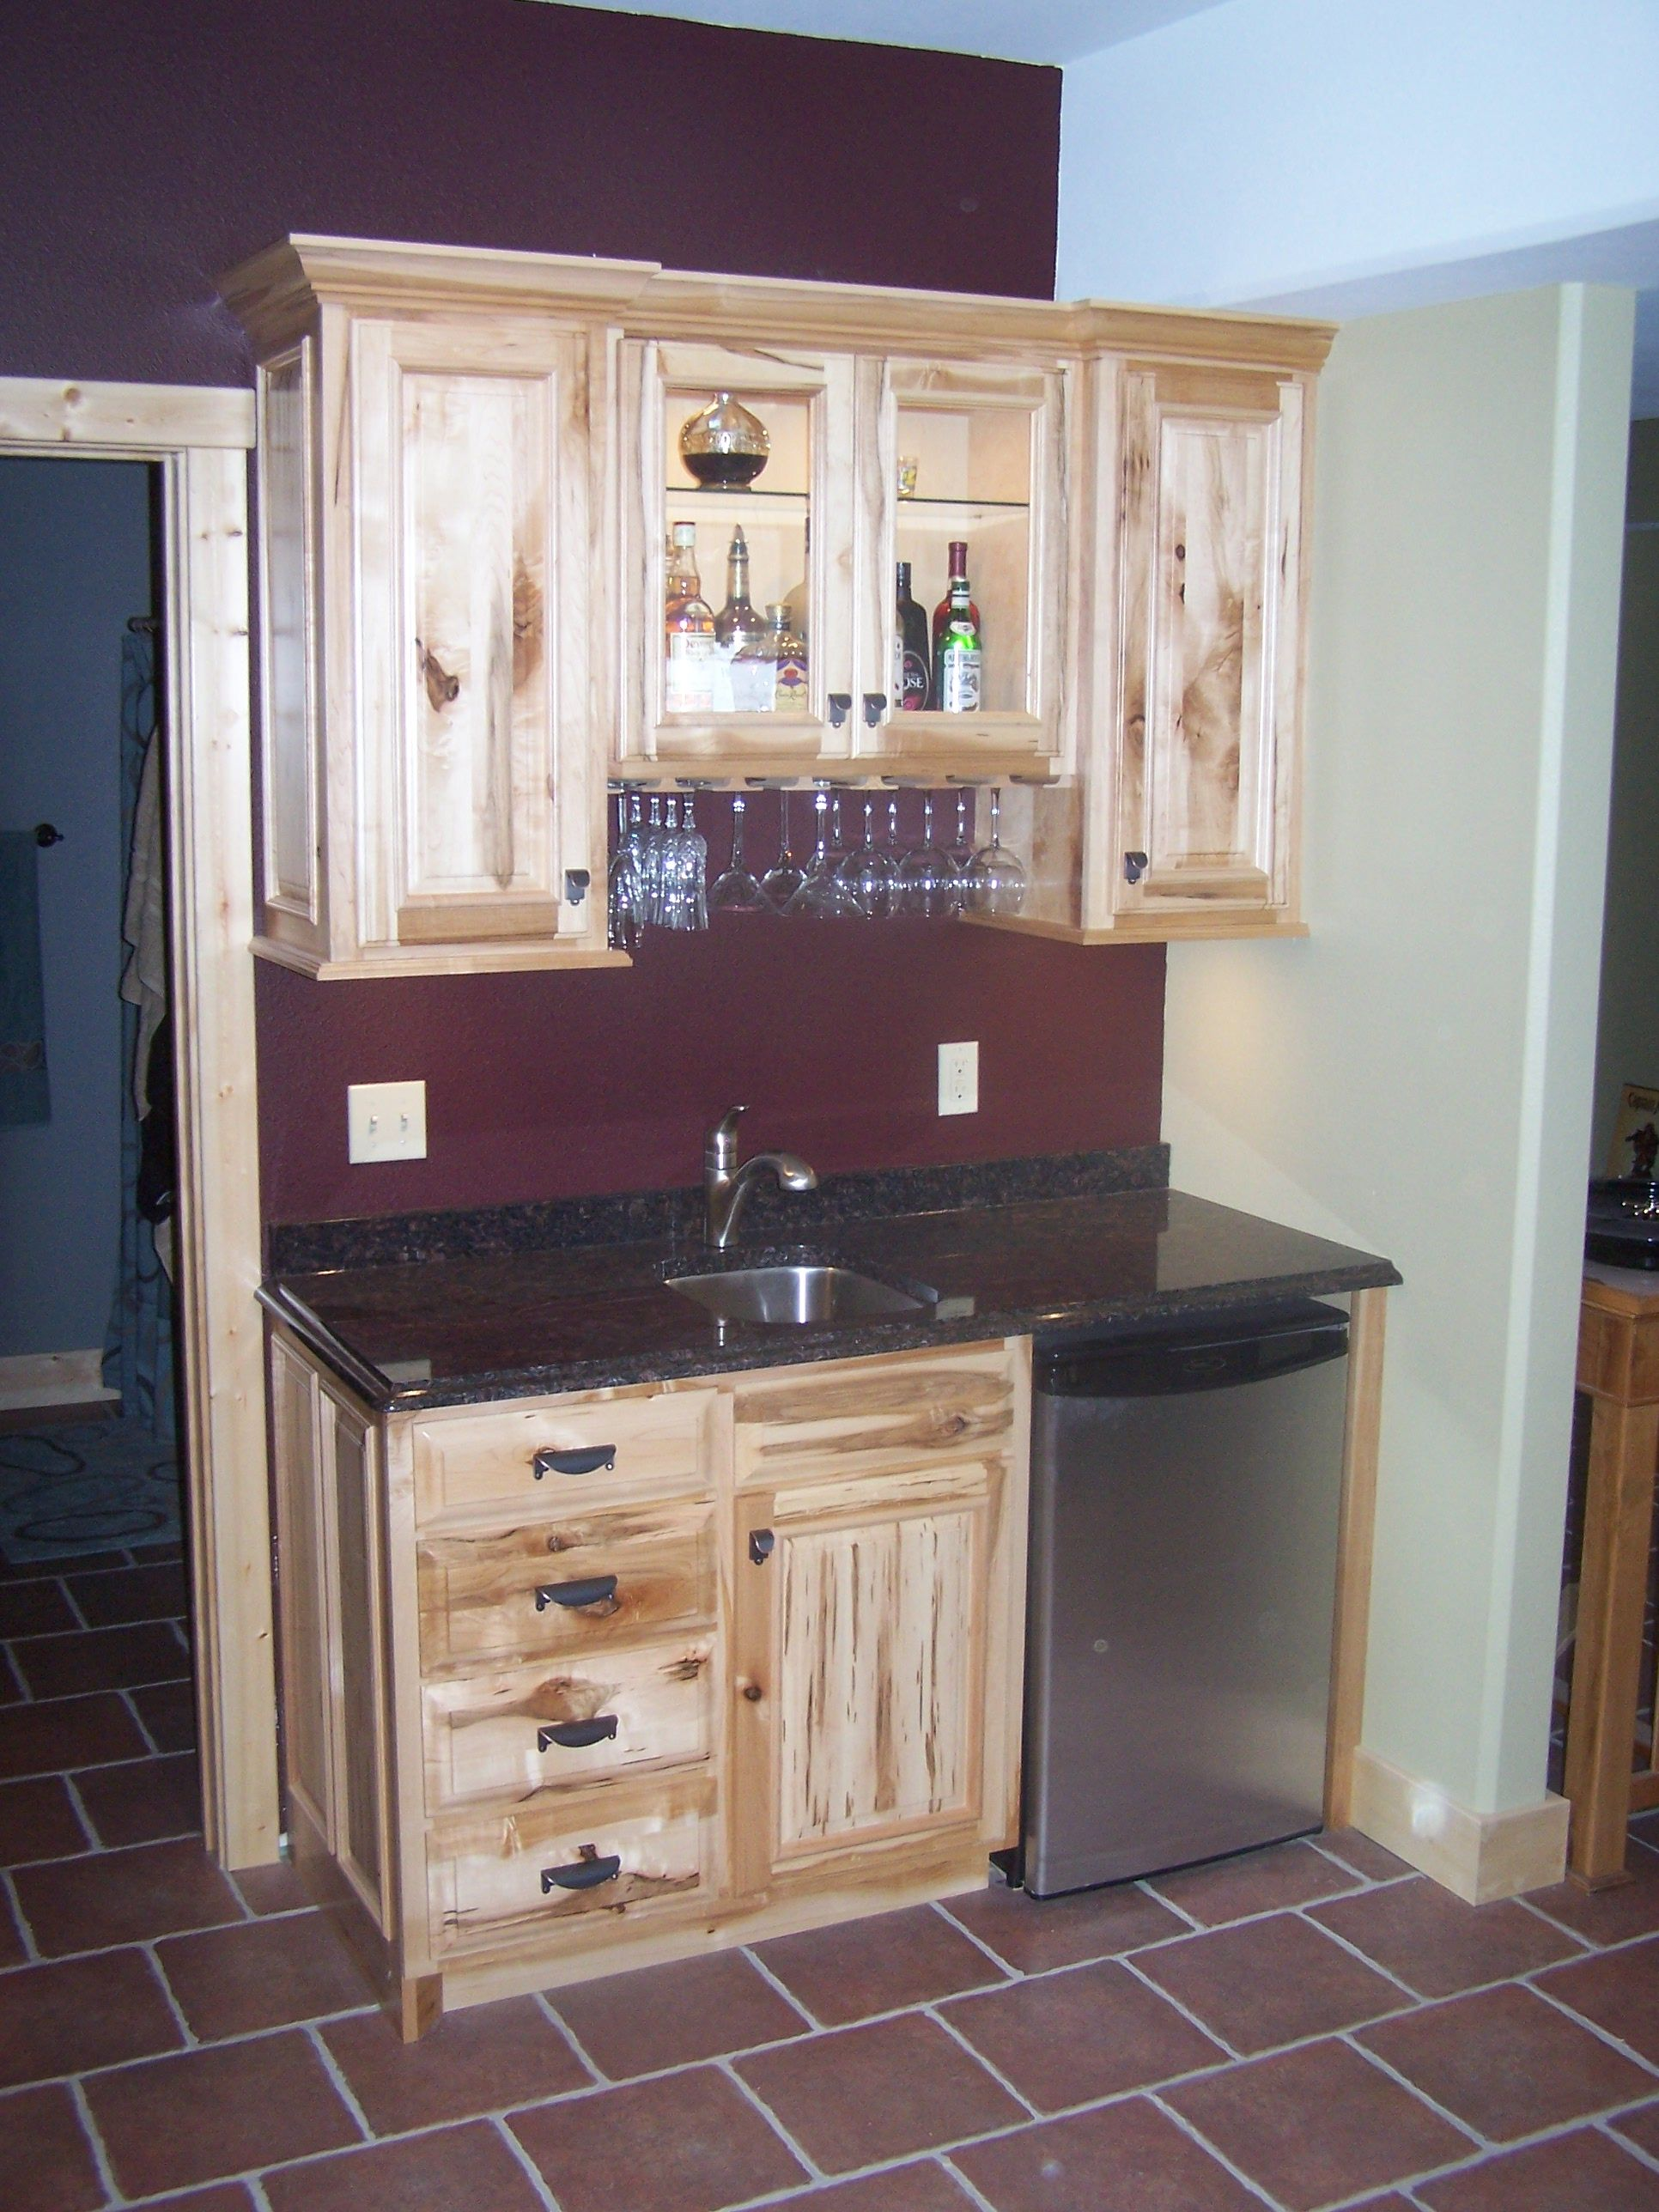 Hickory With Clear Coat Wet Bar In Family Room By Swita Cabinetry Wet Bar Hickory Kitchen Family Room